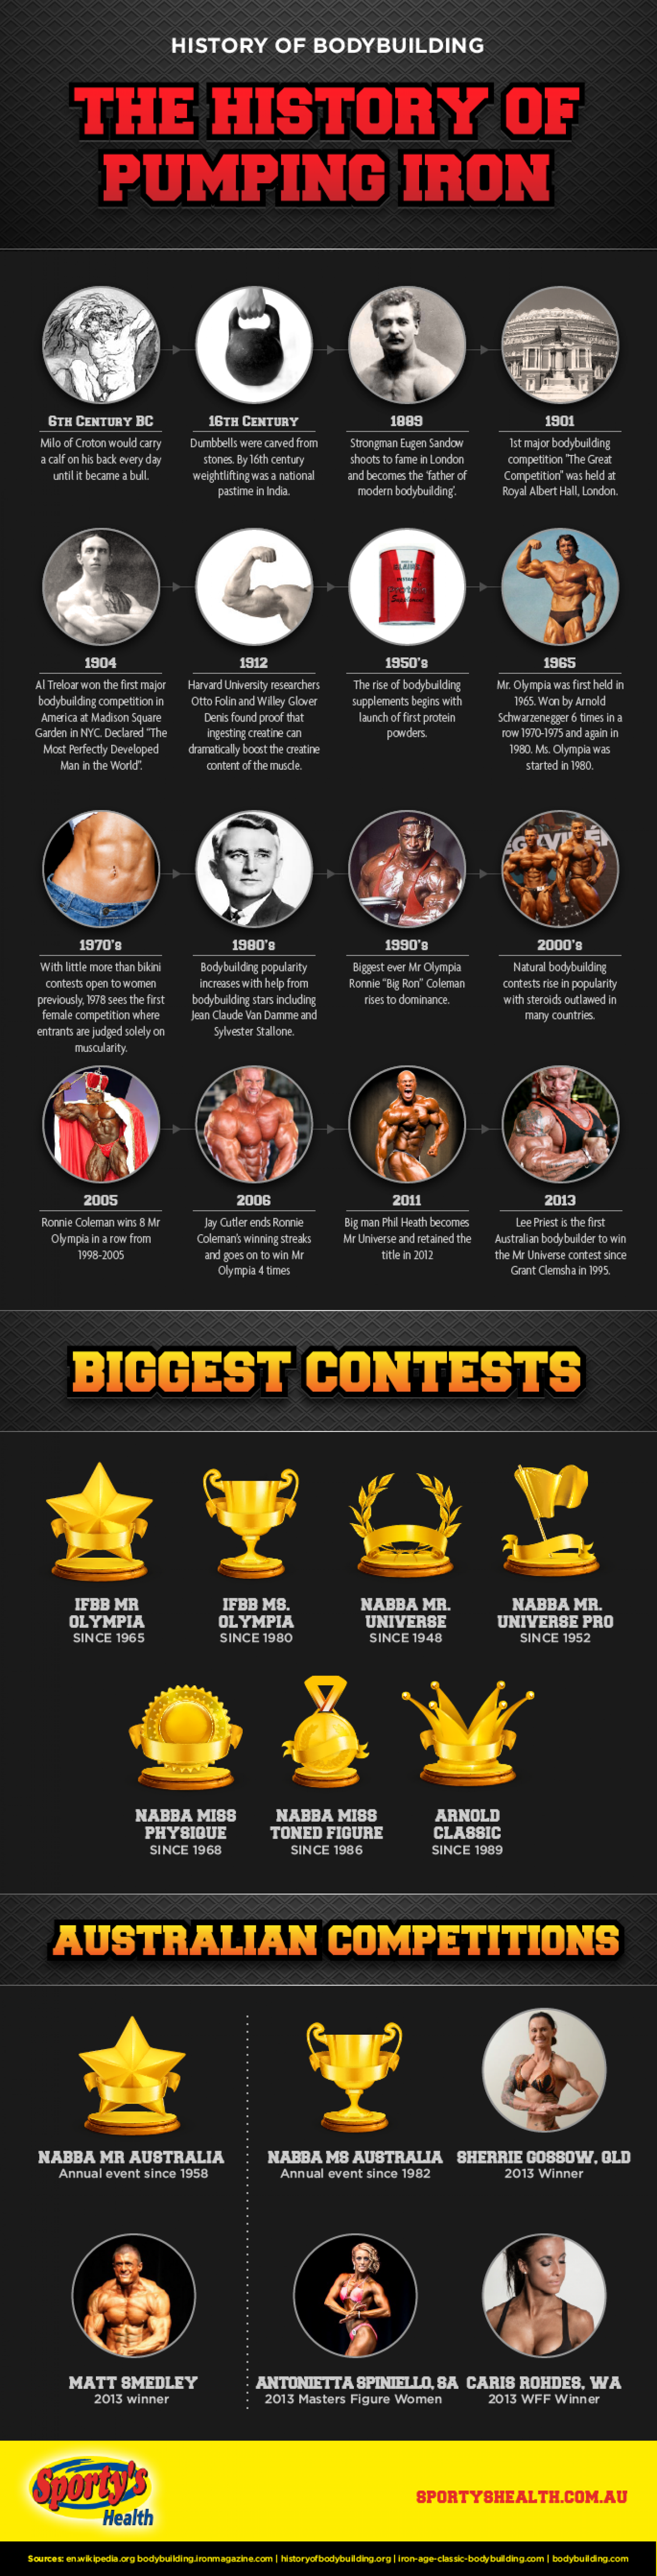 The History of Bodybuilding Infographic